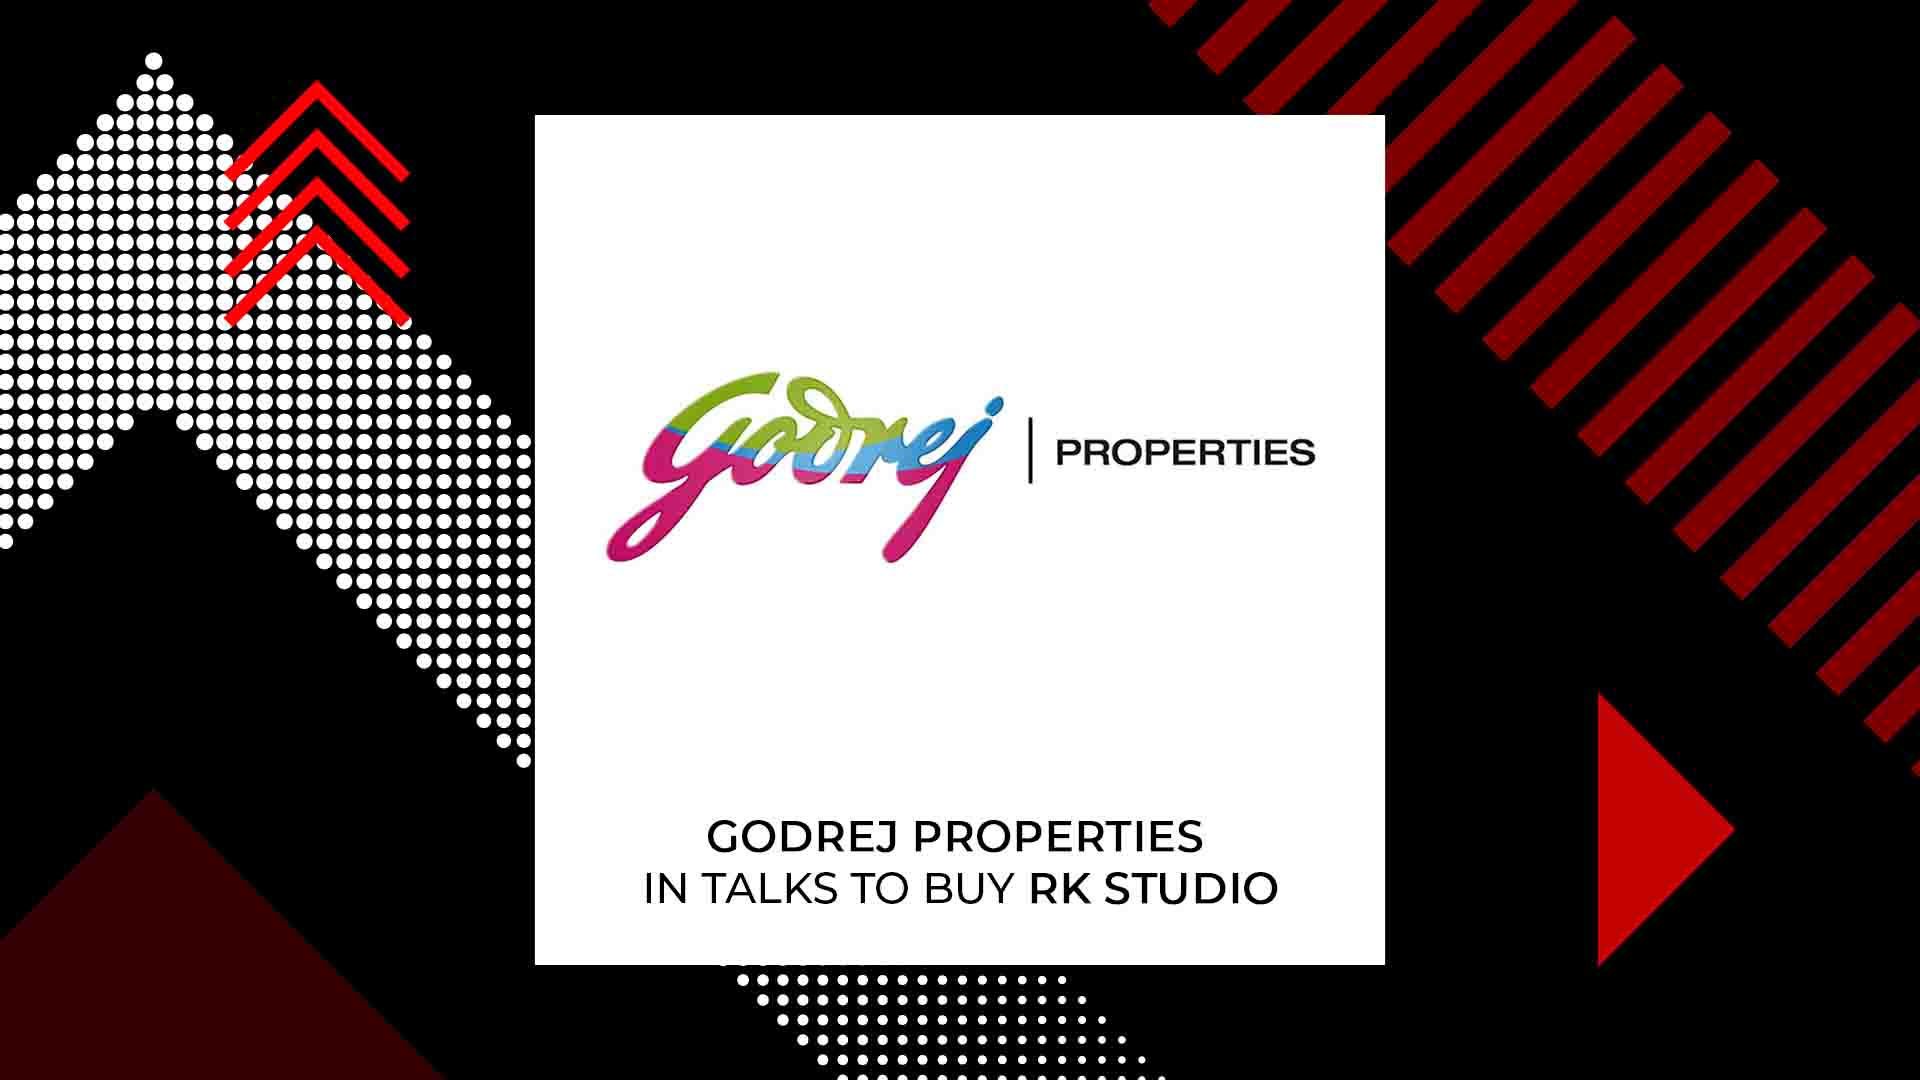 Godrej Properties To Be The Next Owners Of RK Studios?